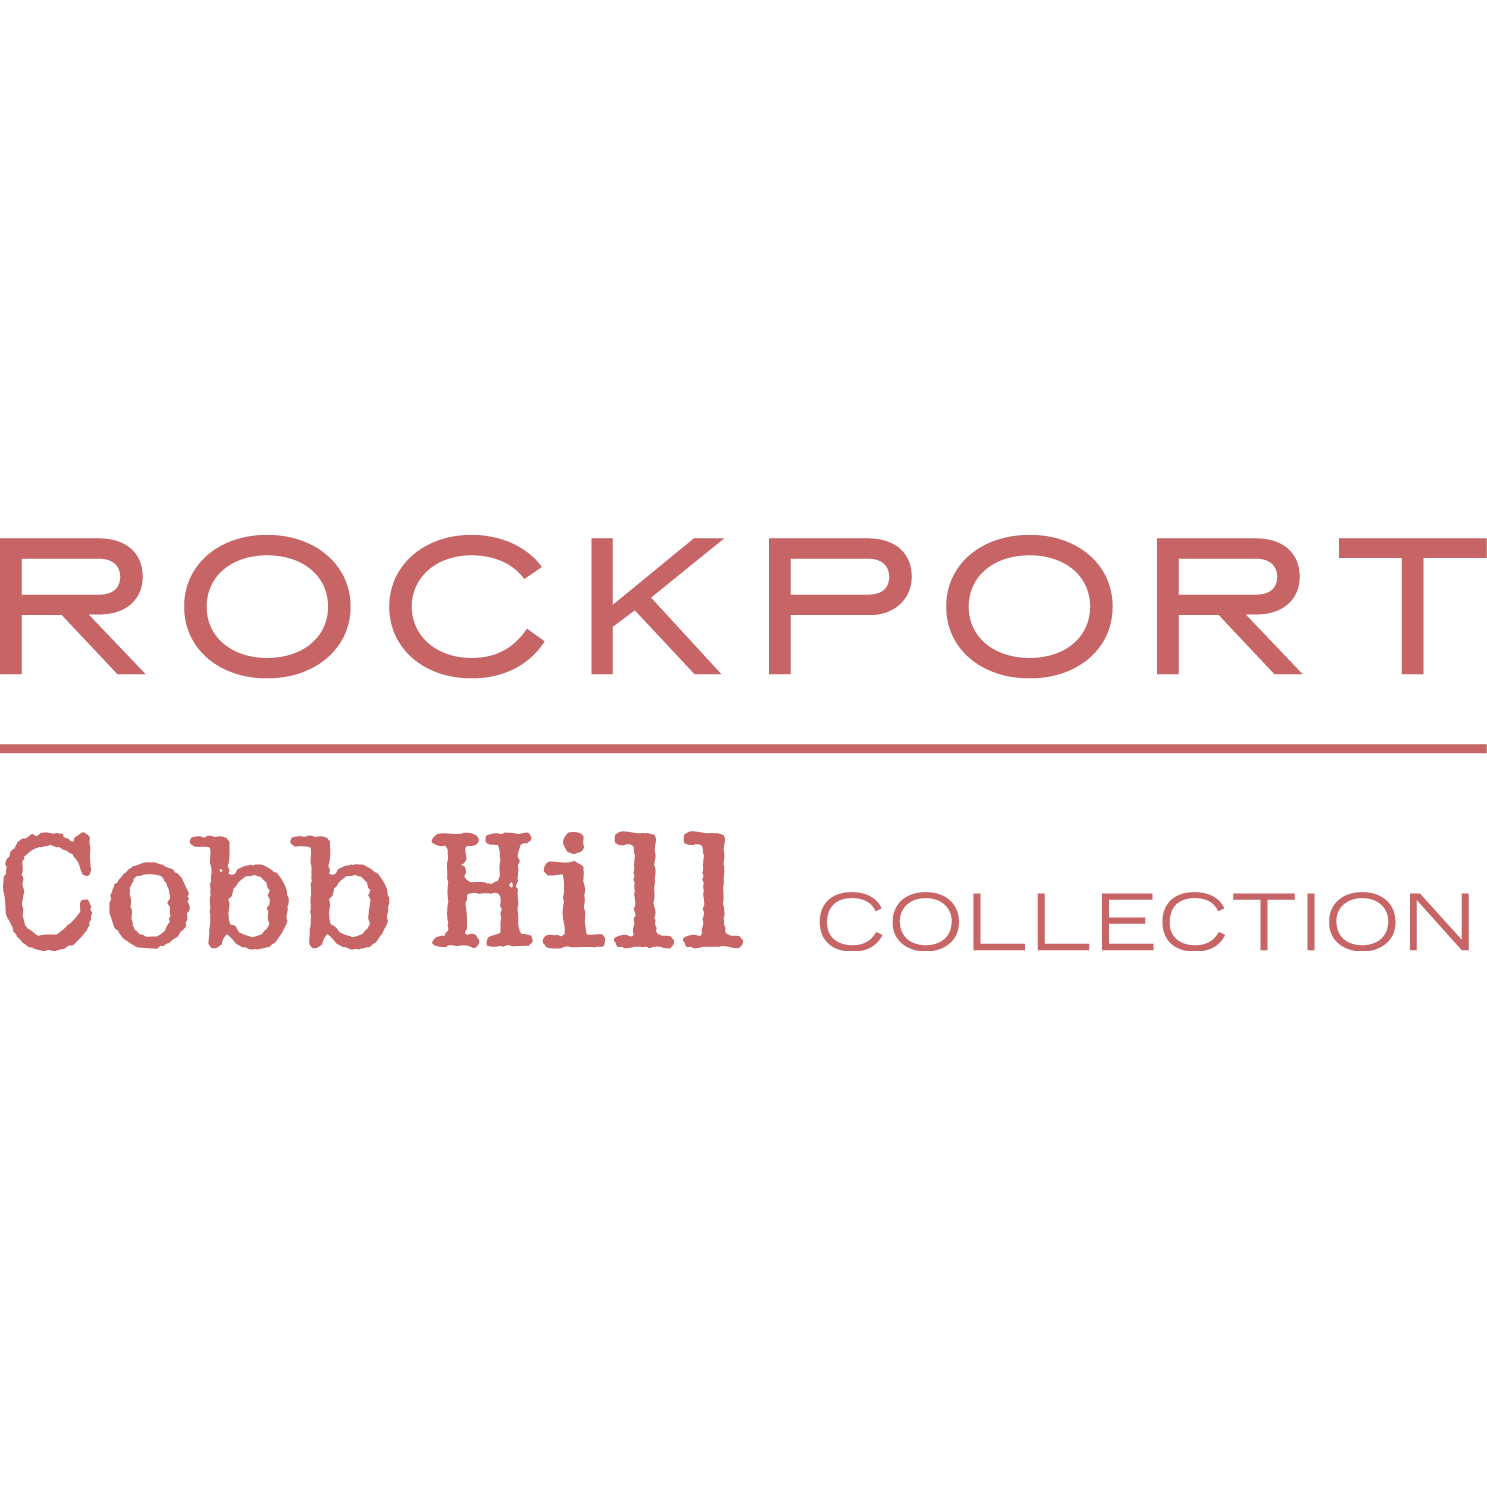 Rockport - Cobb Hill Collection